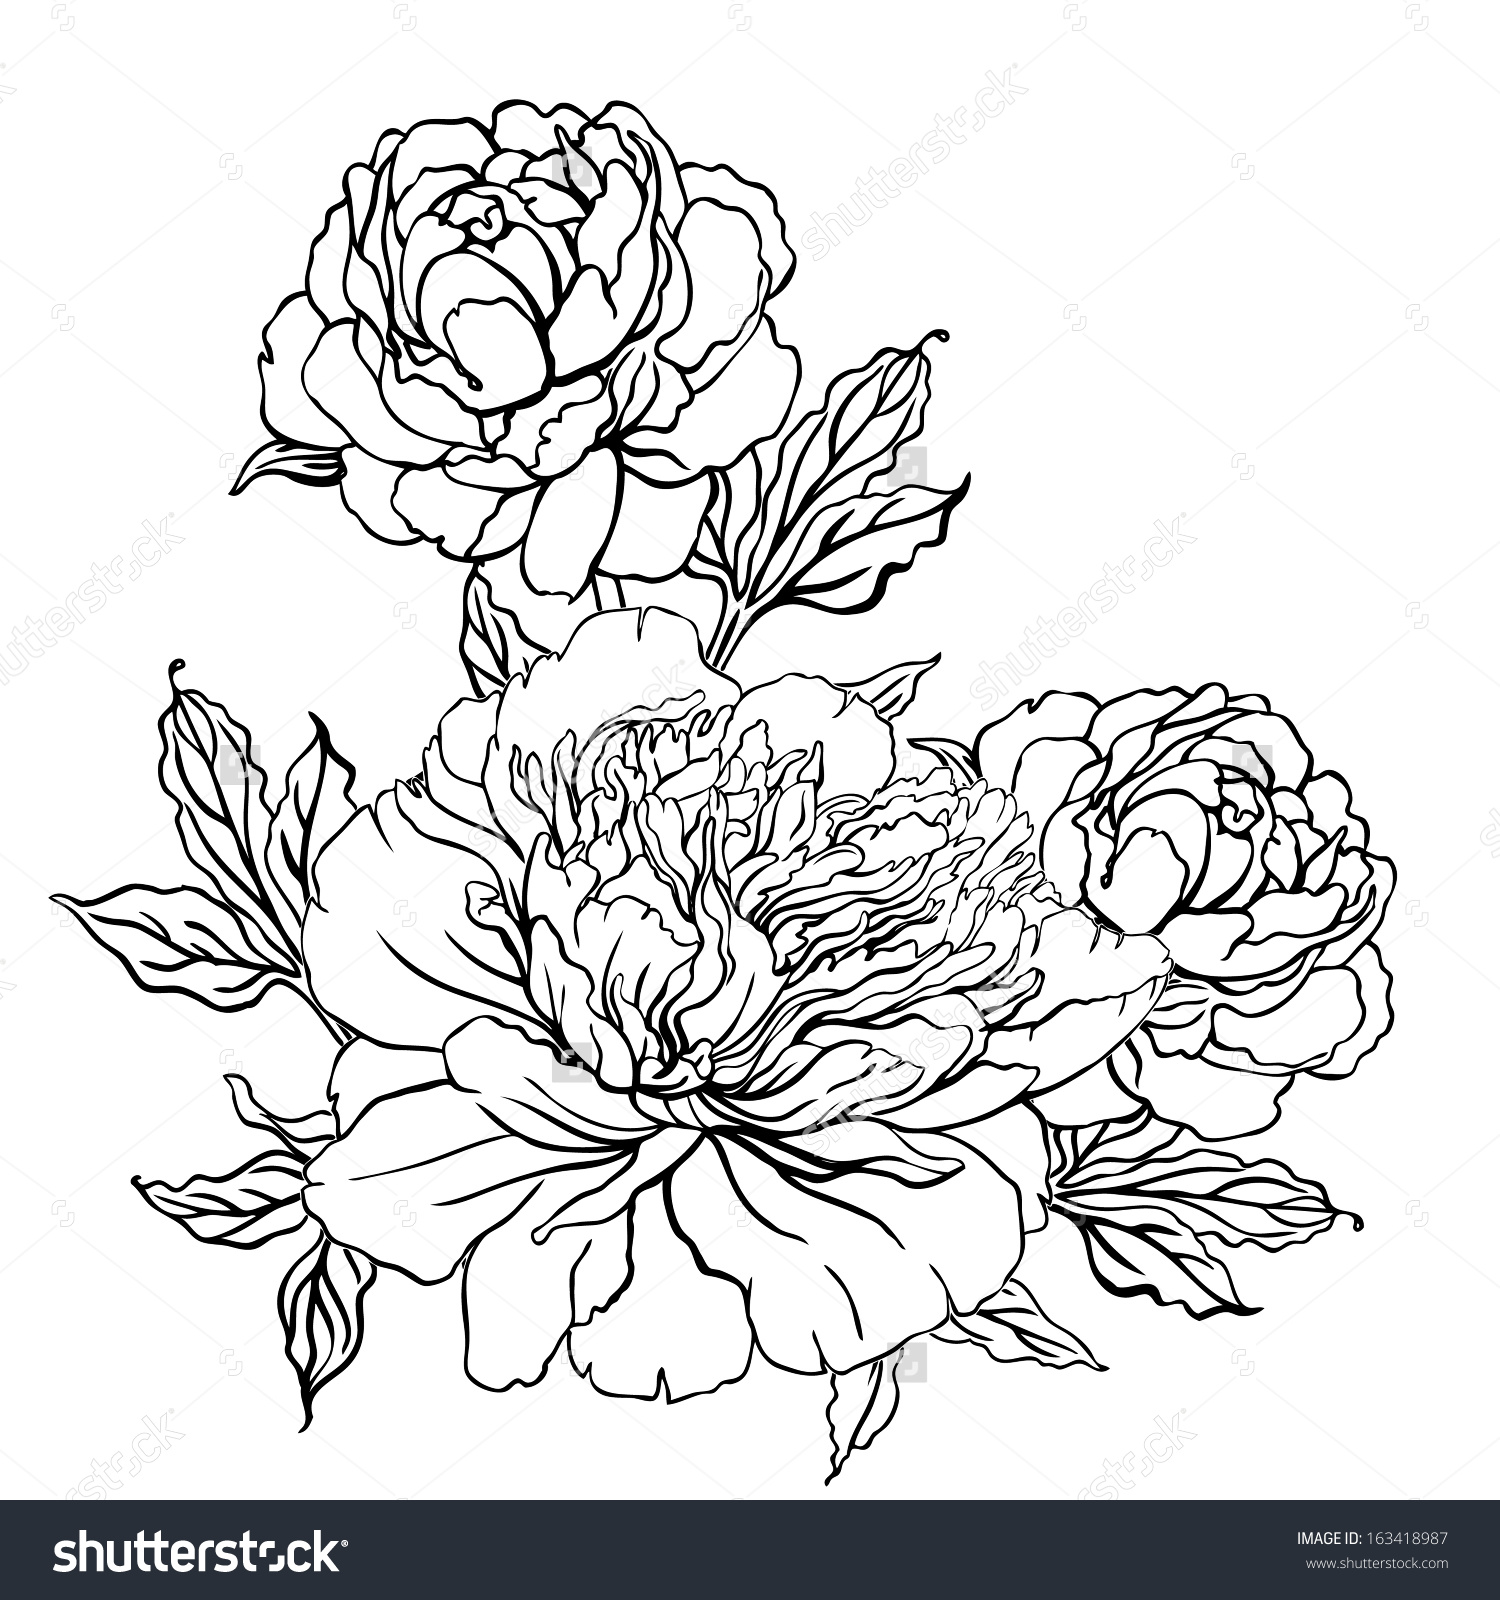 Drawn peony vintage Peony: Flowers With Drawing Hand